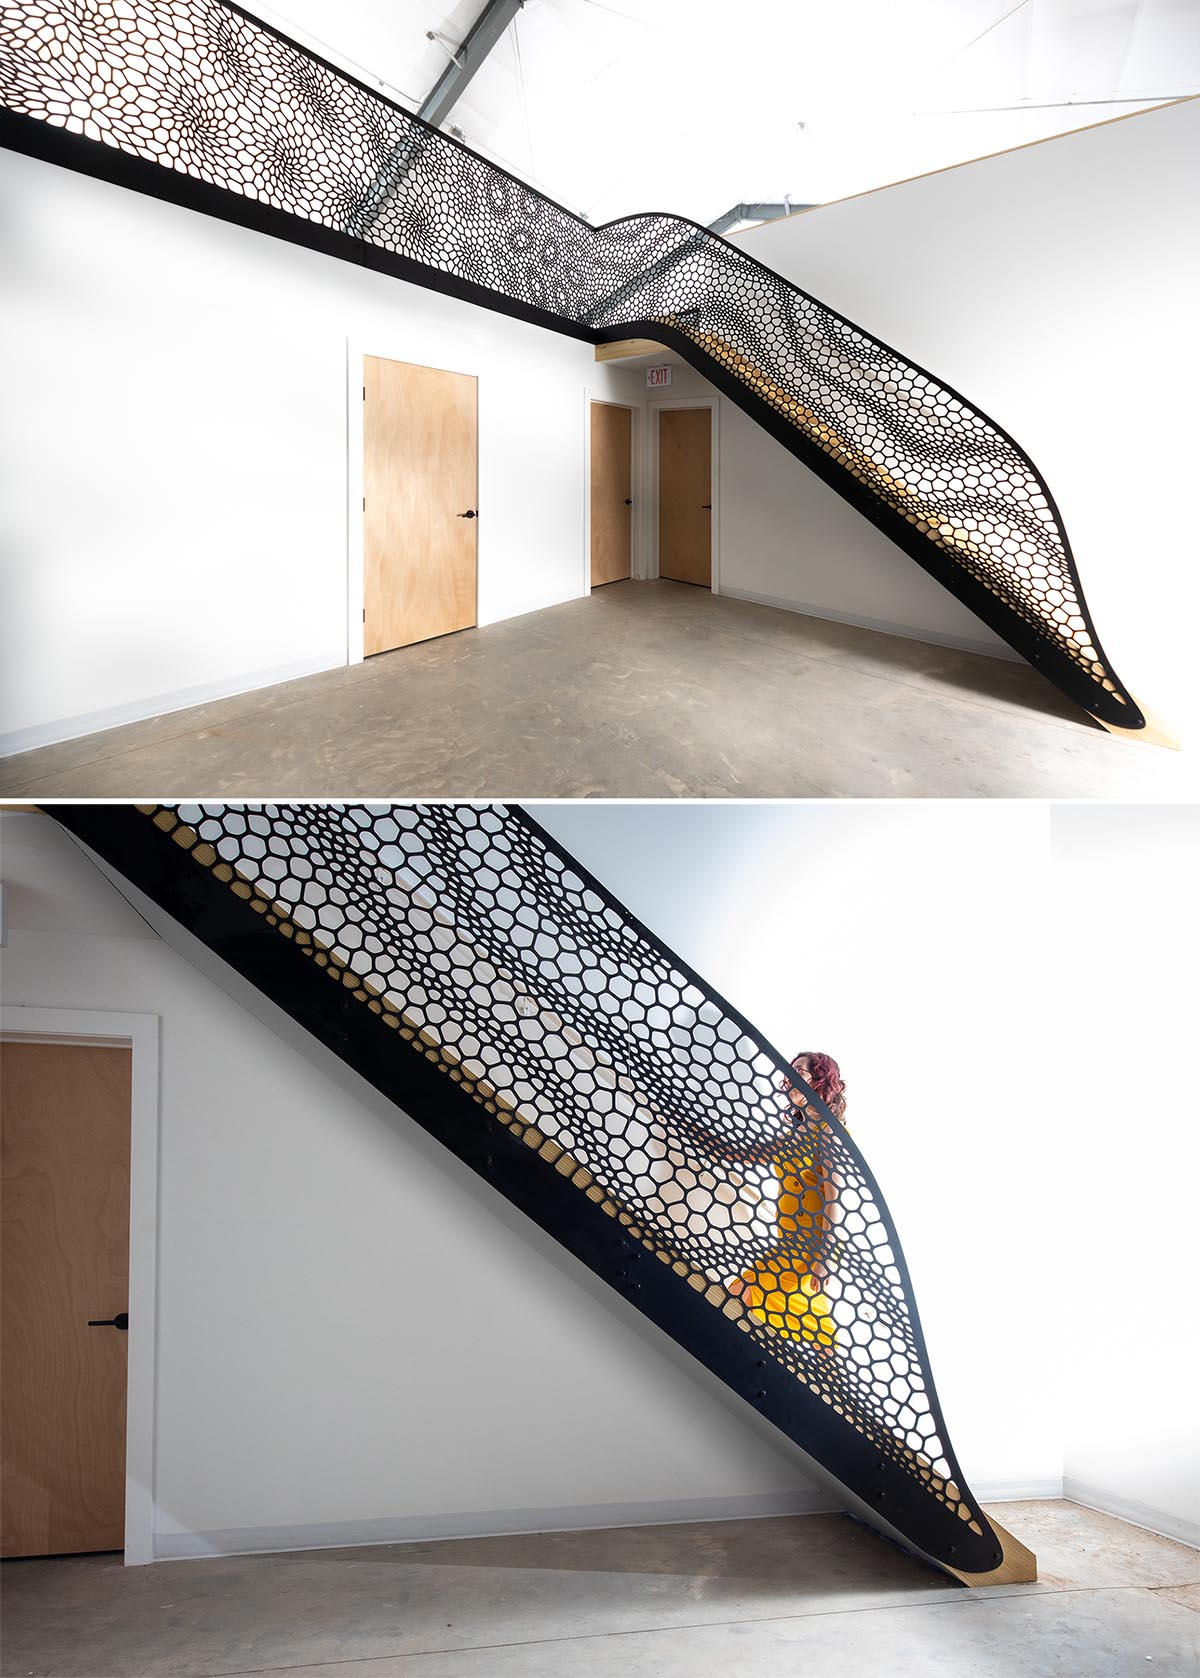 An artistic laser cut staircase railing with a matte black finish.